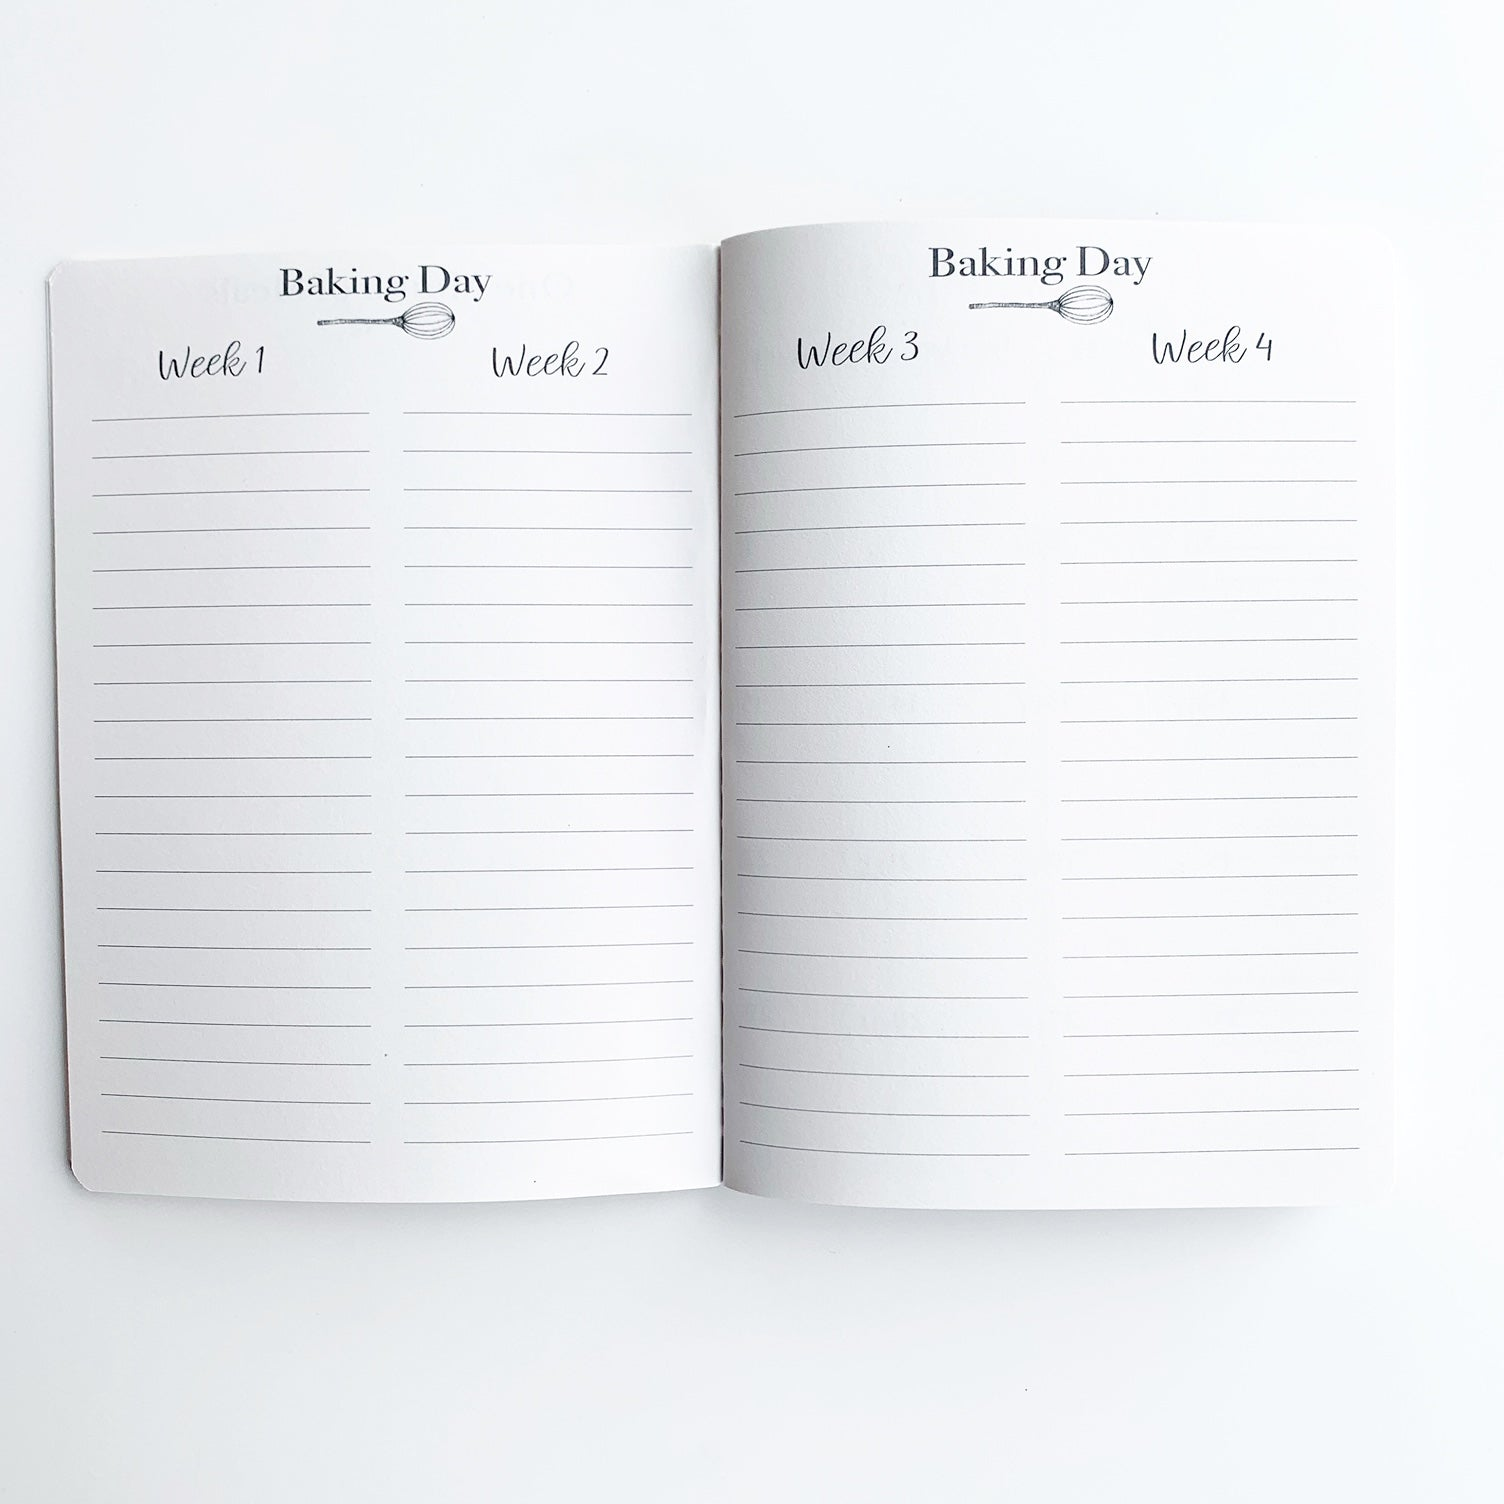 Baking Day Menu Planner Pages